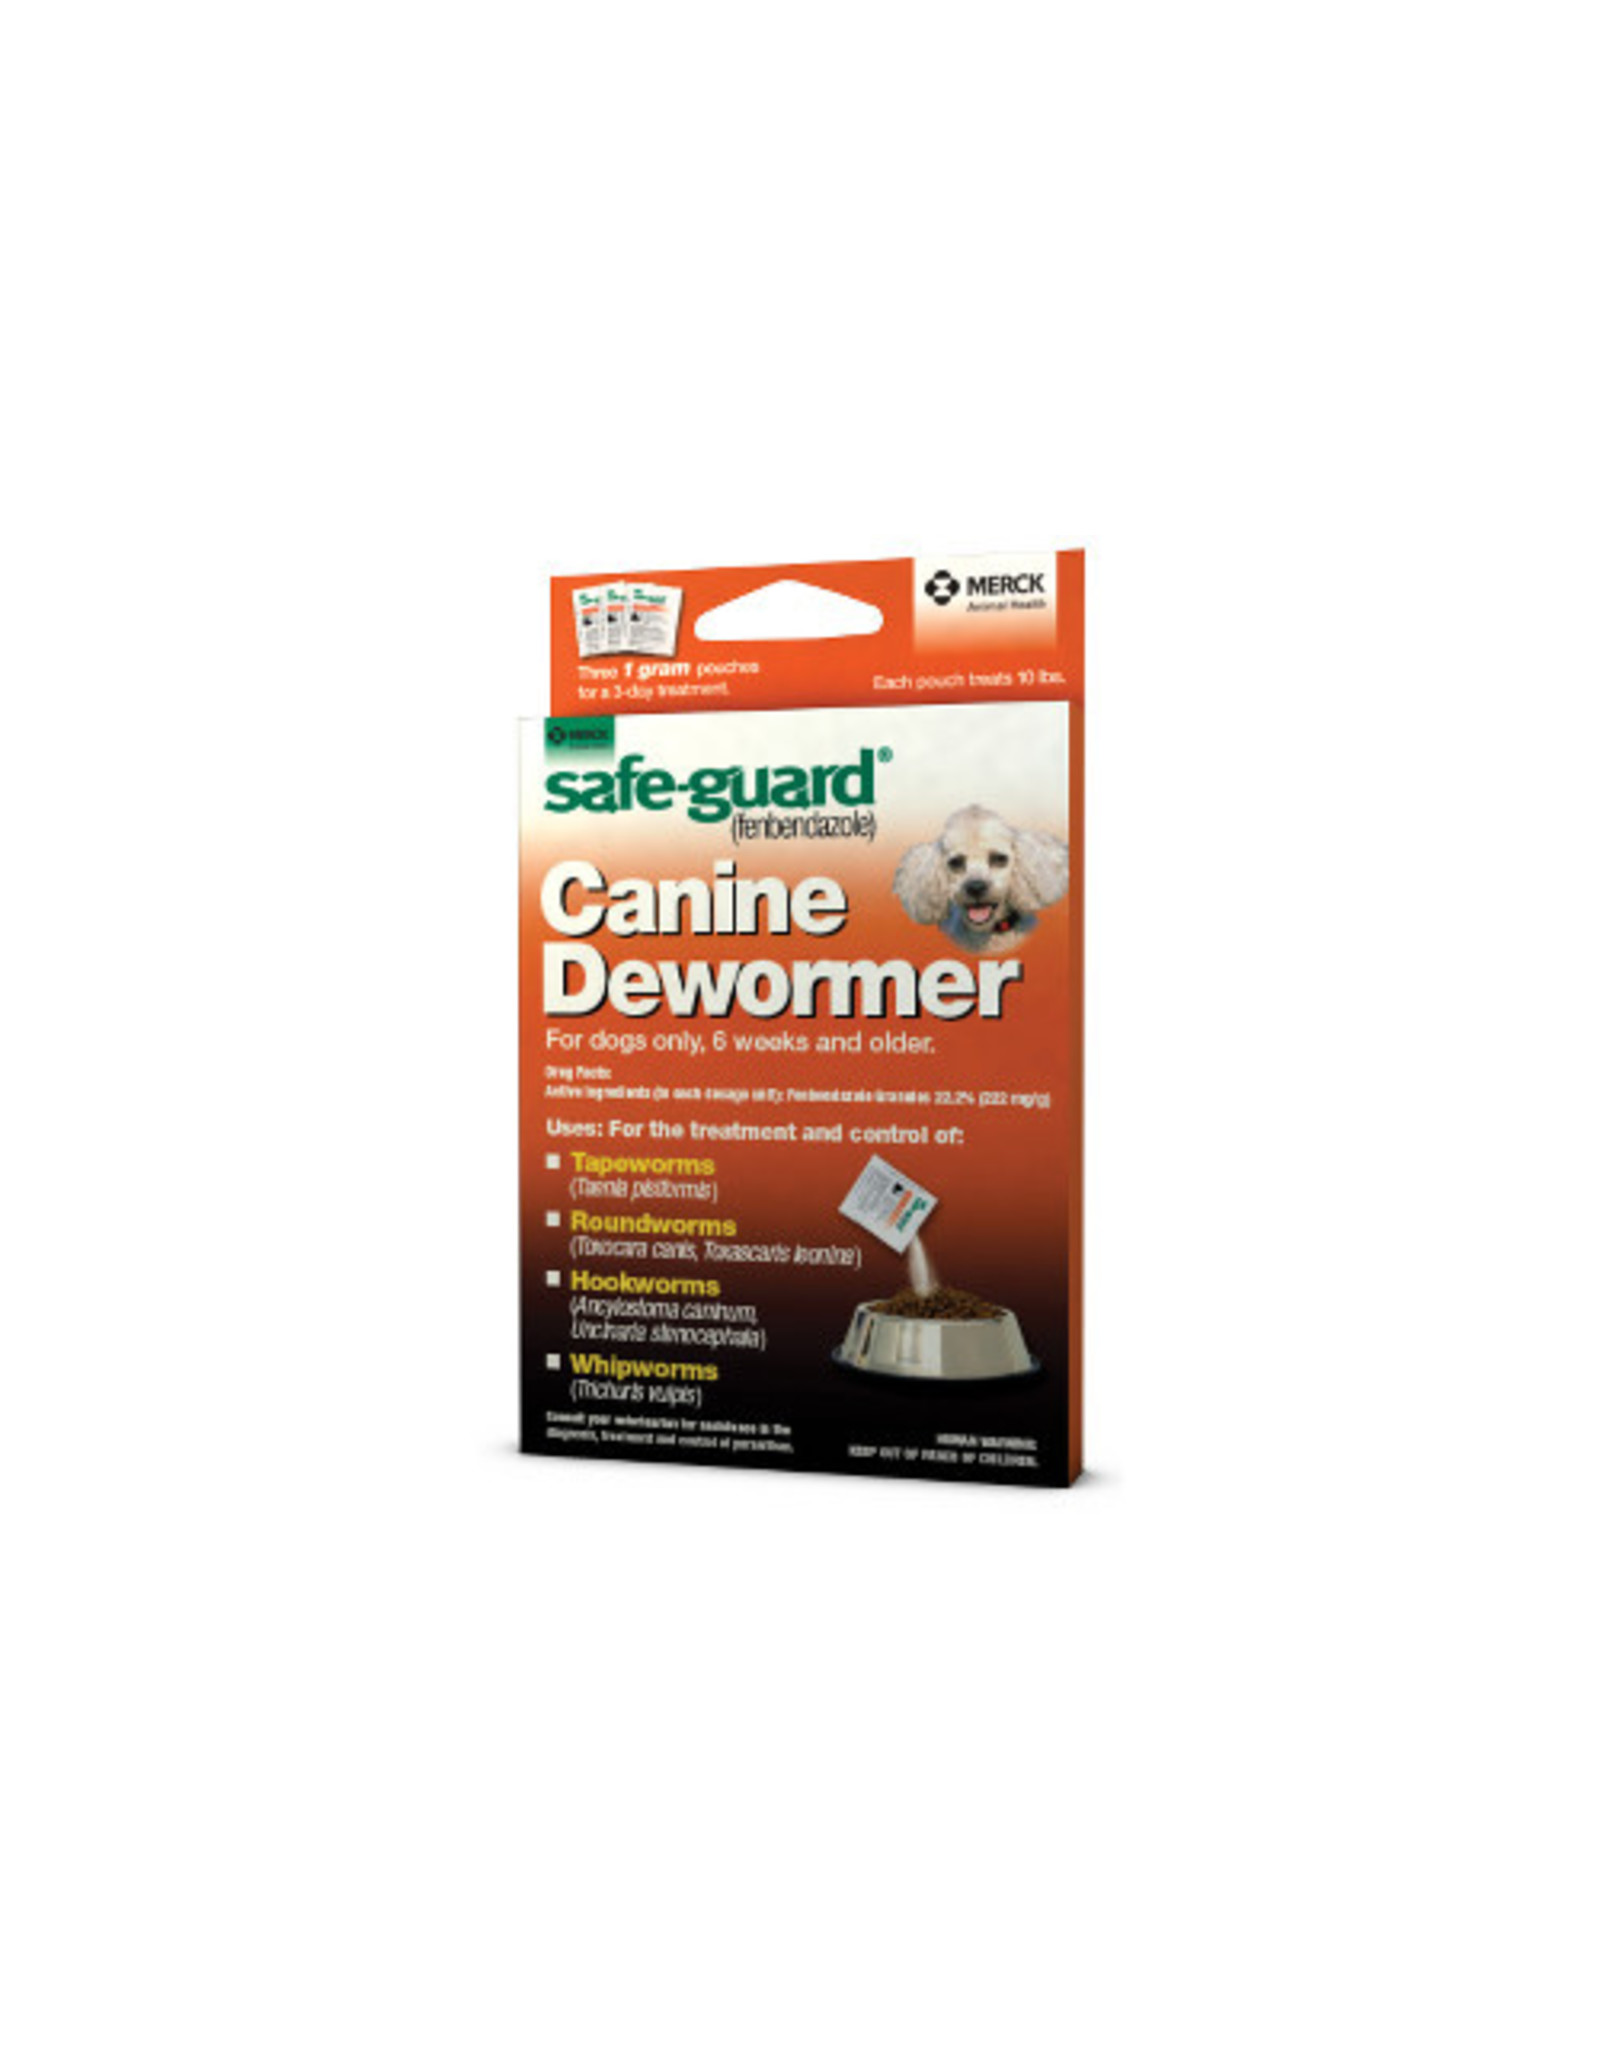 Safe-Guard Canine Dewormer 1gm